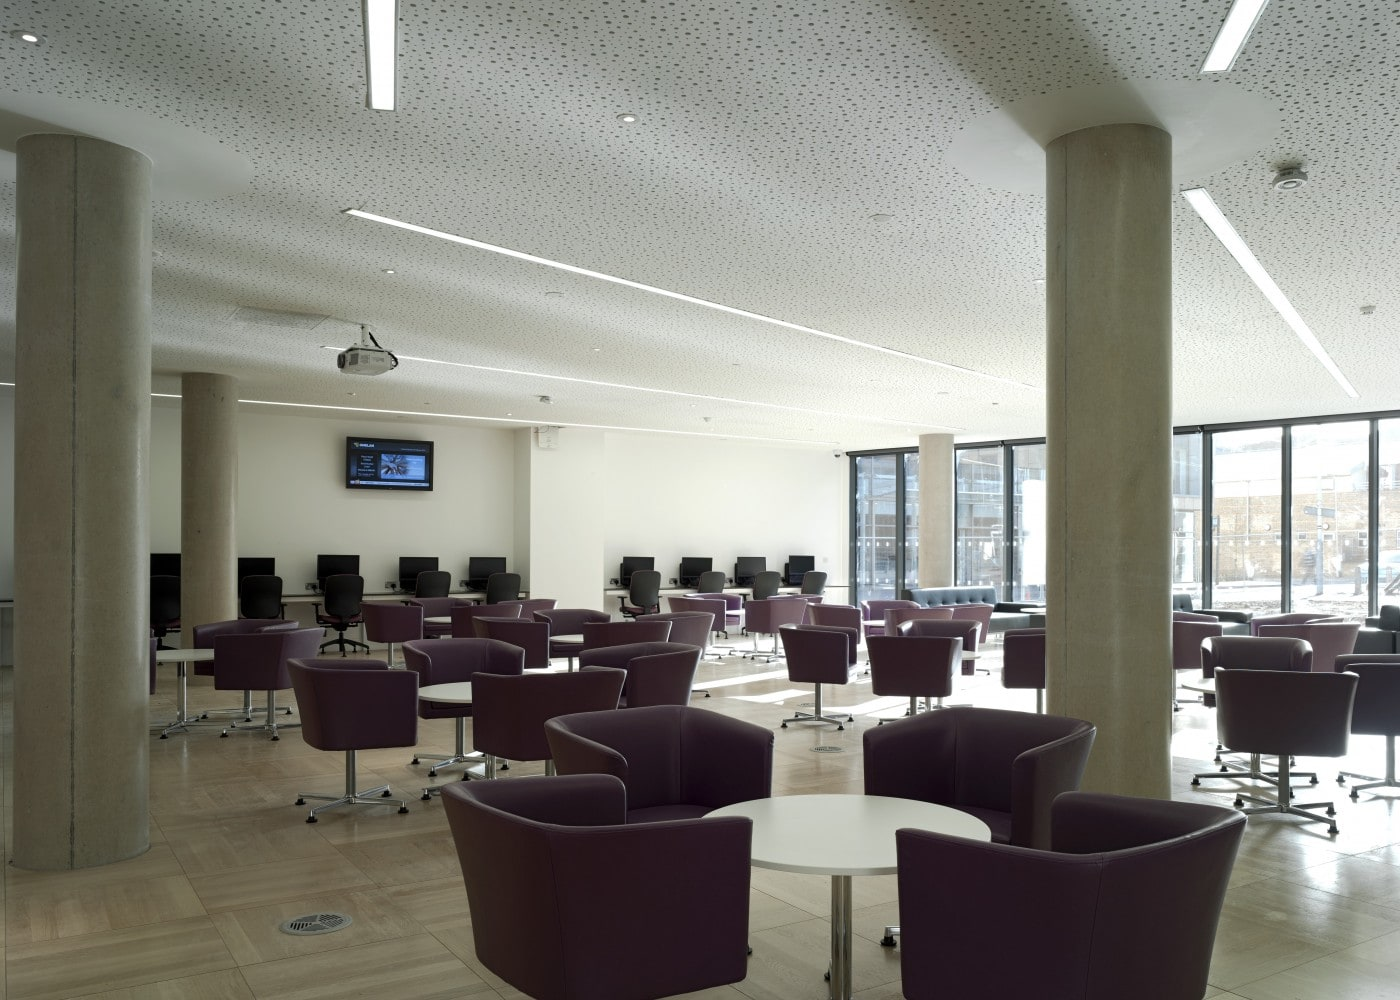 education lighting: University of Bedfordshire seating area